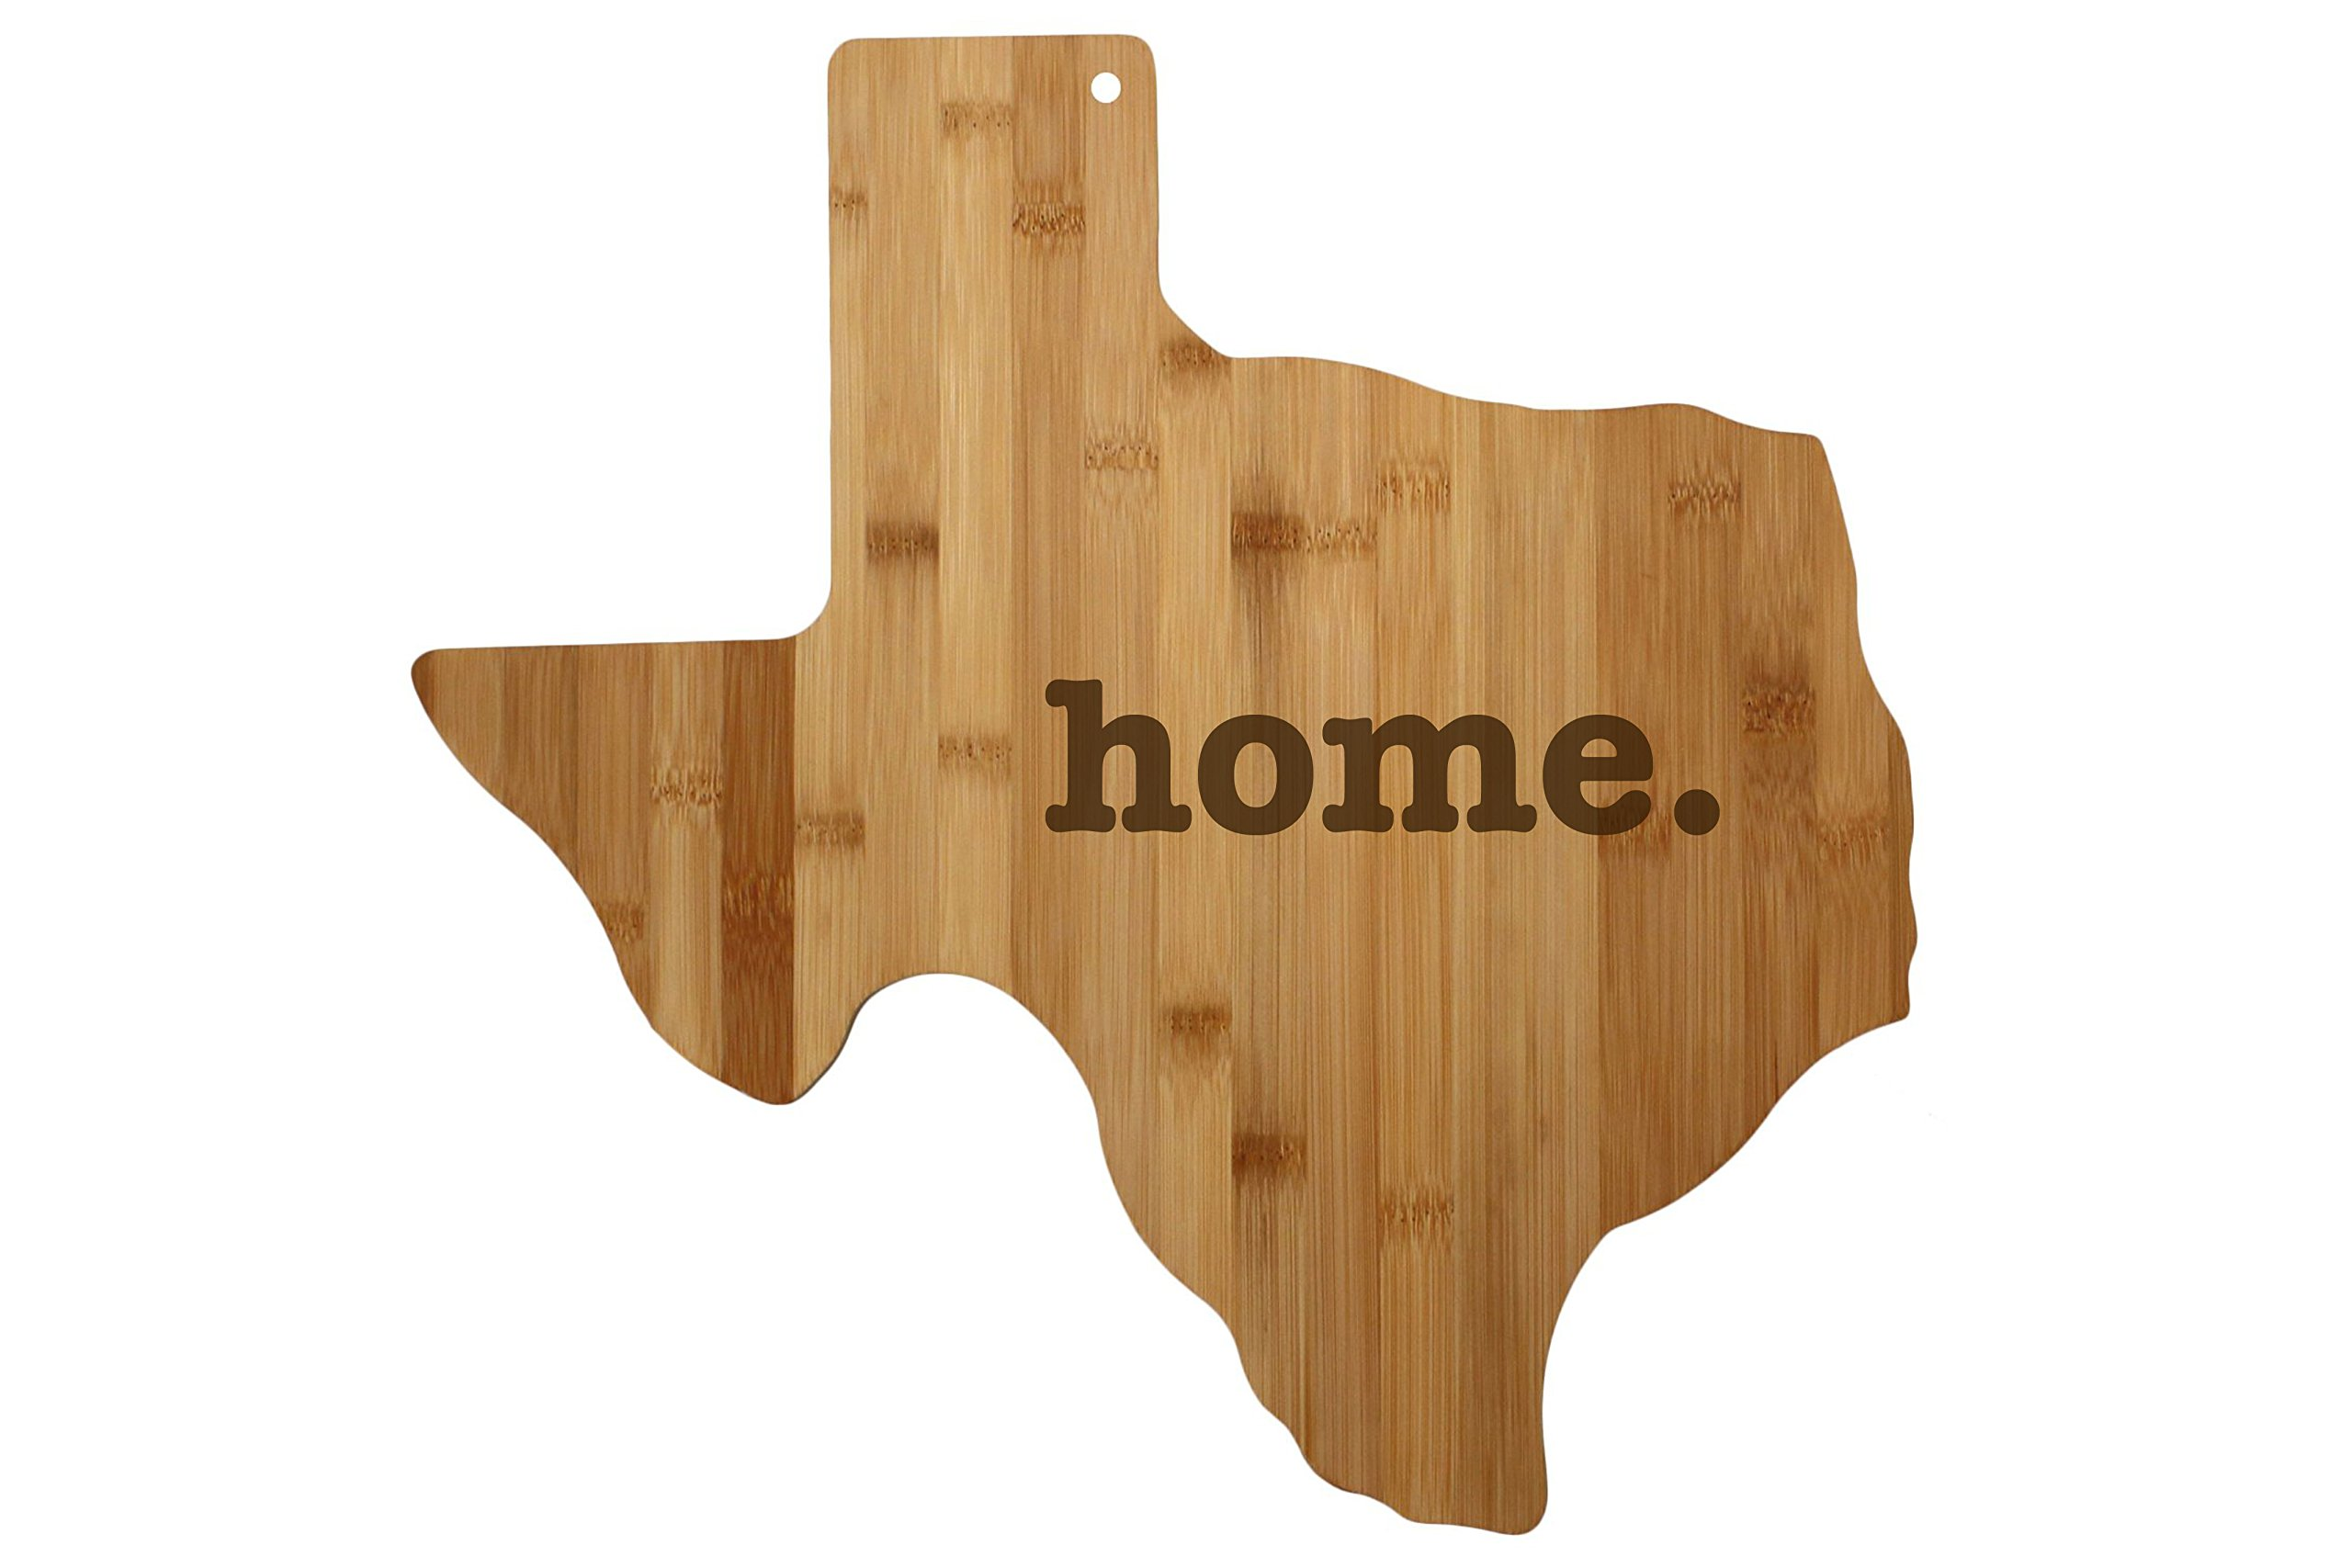 Texas Cutting Board State Shaped Wood Bamboo Engraved home. For New Family Home Housewarming Wedding Moving Father's Day Gift